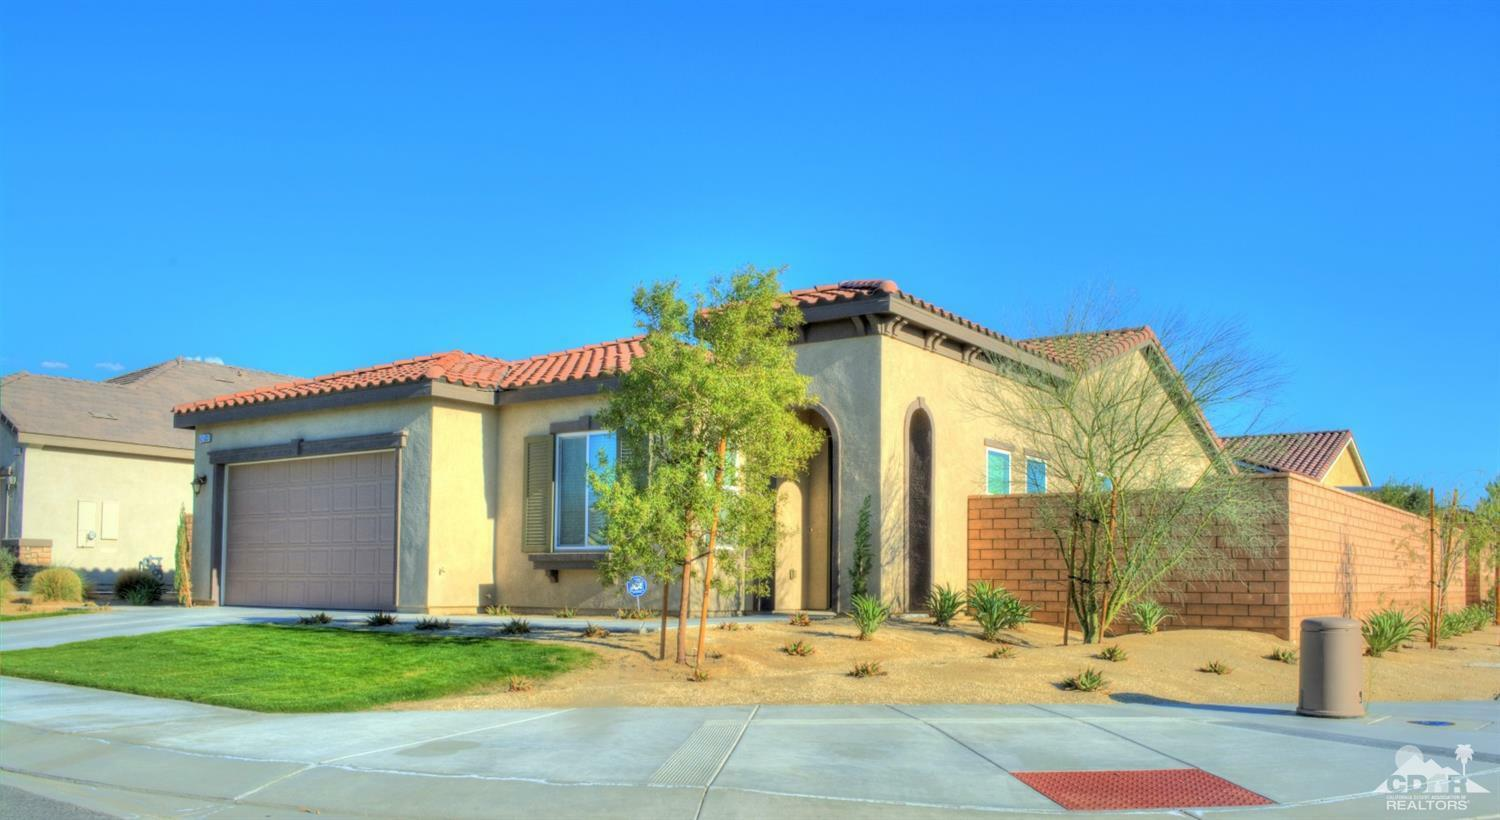 42830 Brienno Court, Indio, CA - USA (photo 2)